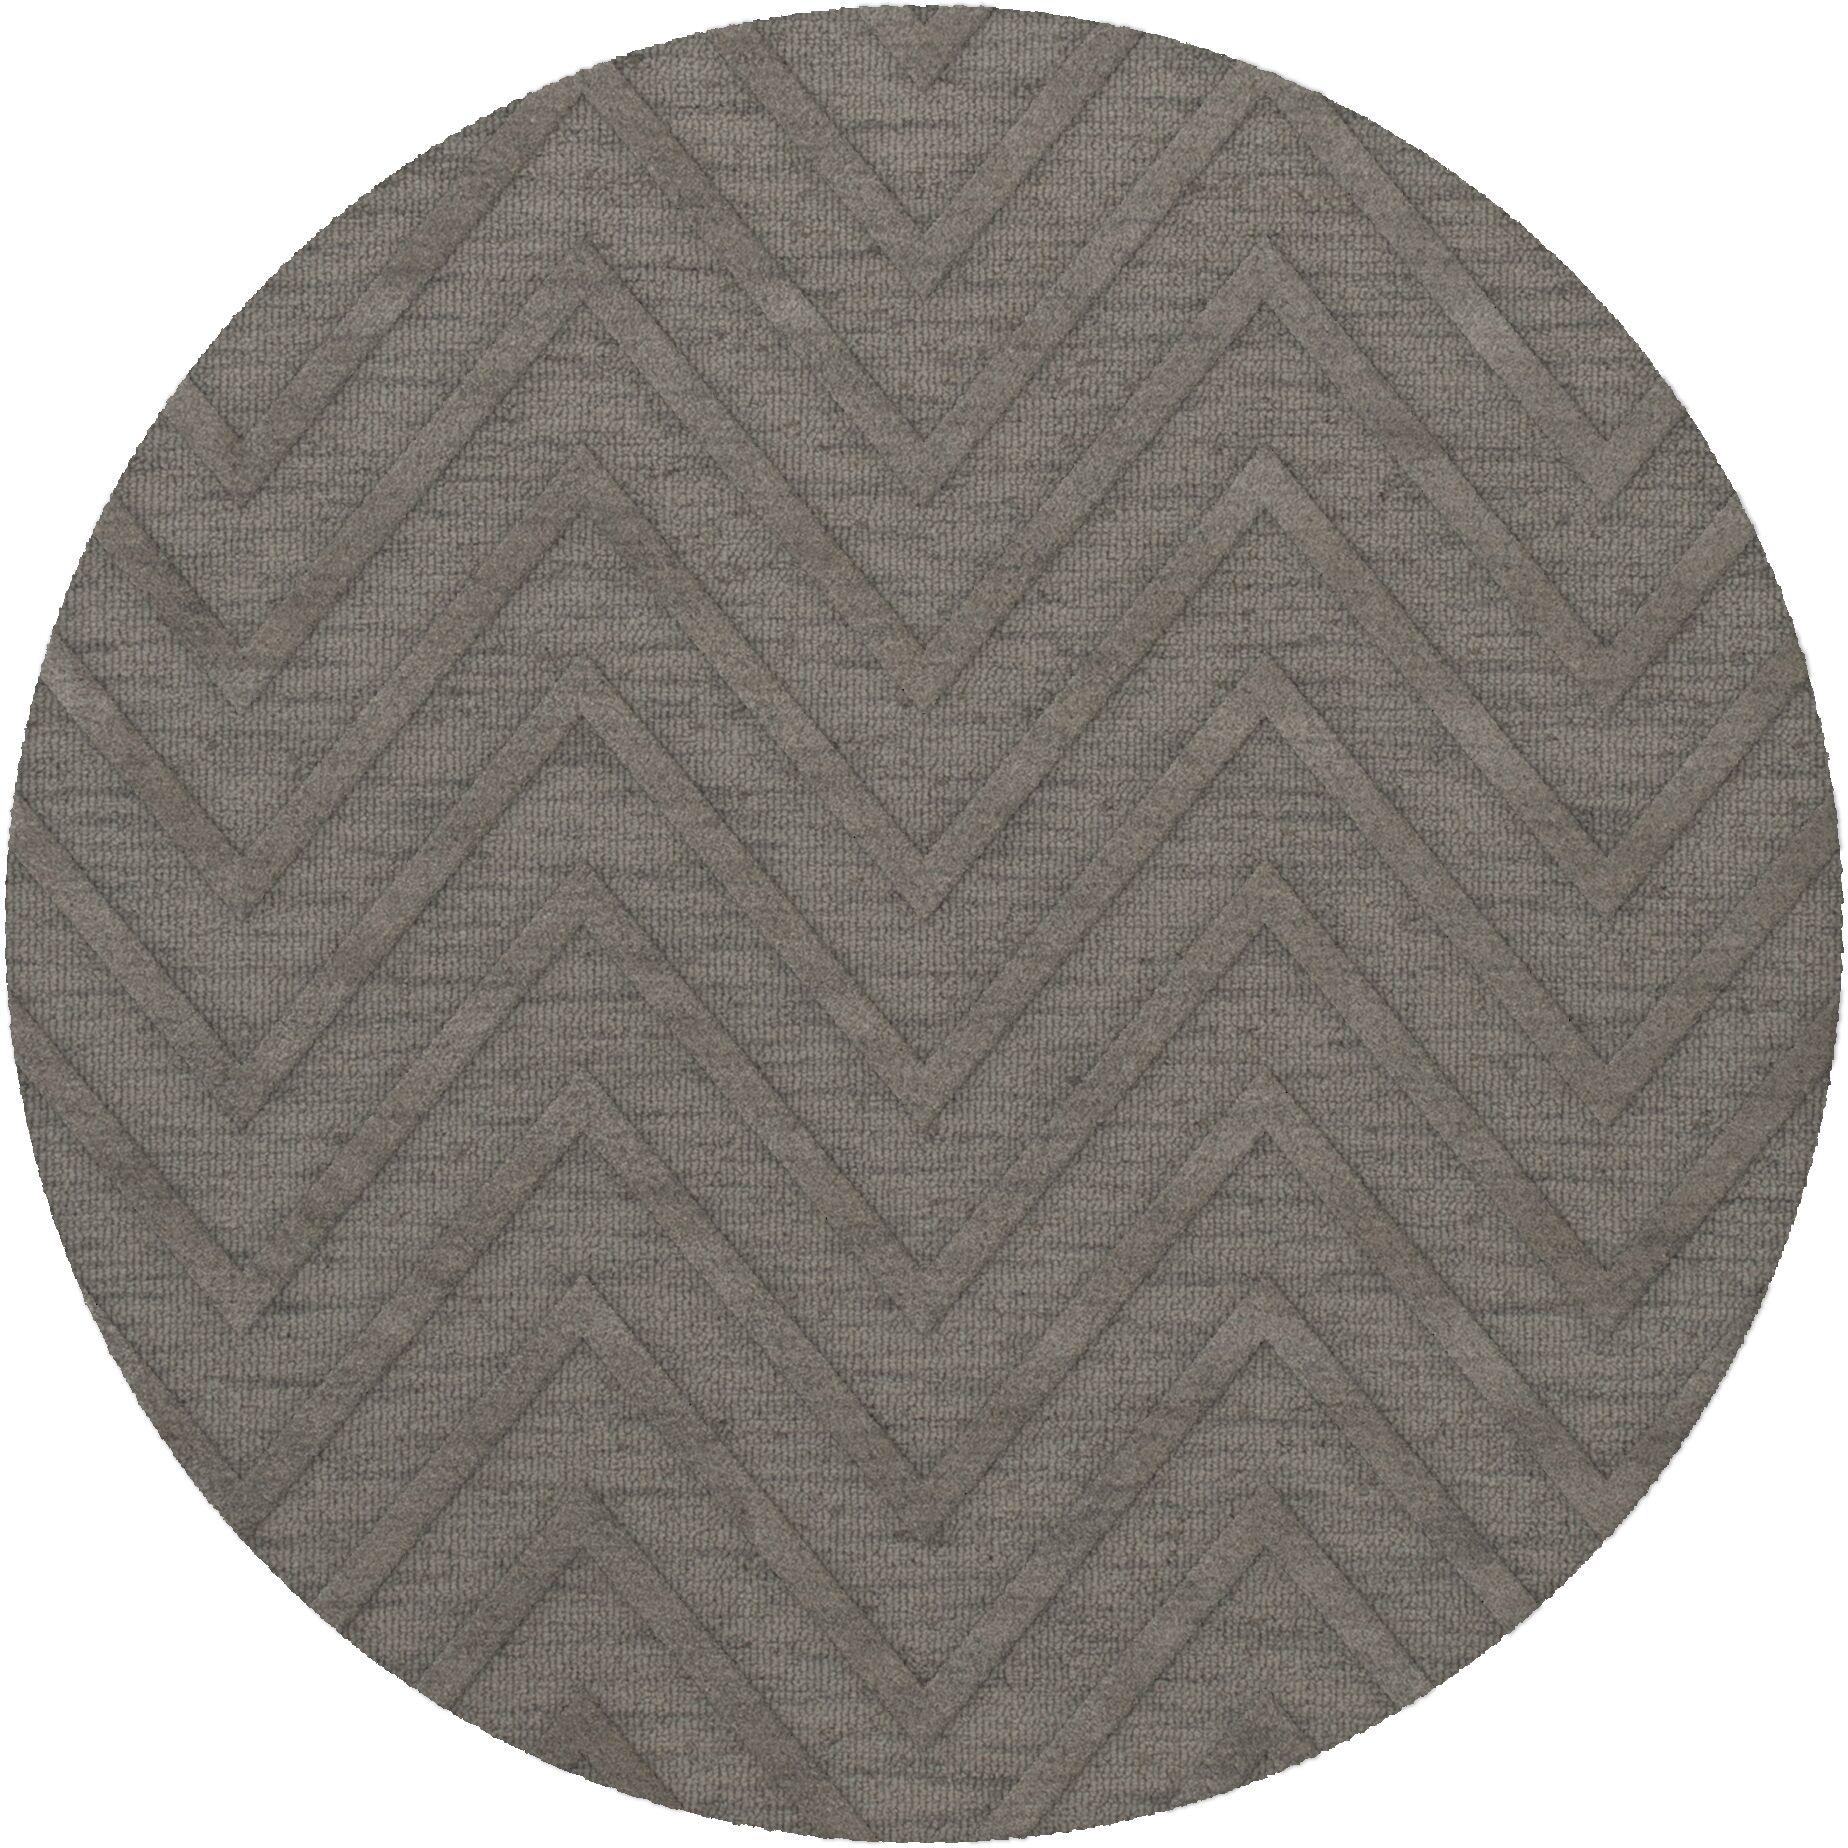 Dover Tufted Wool Silver Area Rug Rug Size: Round 10'